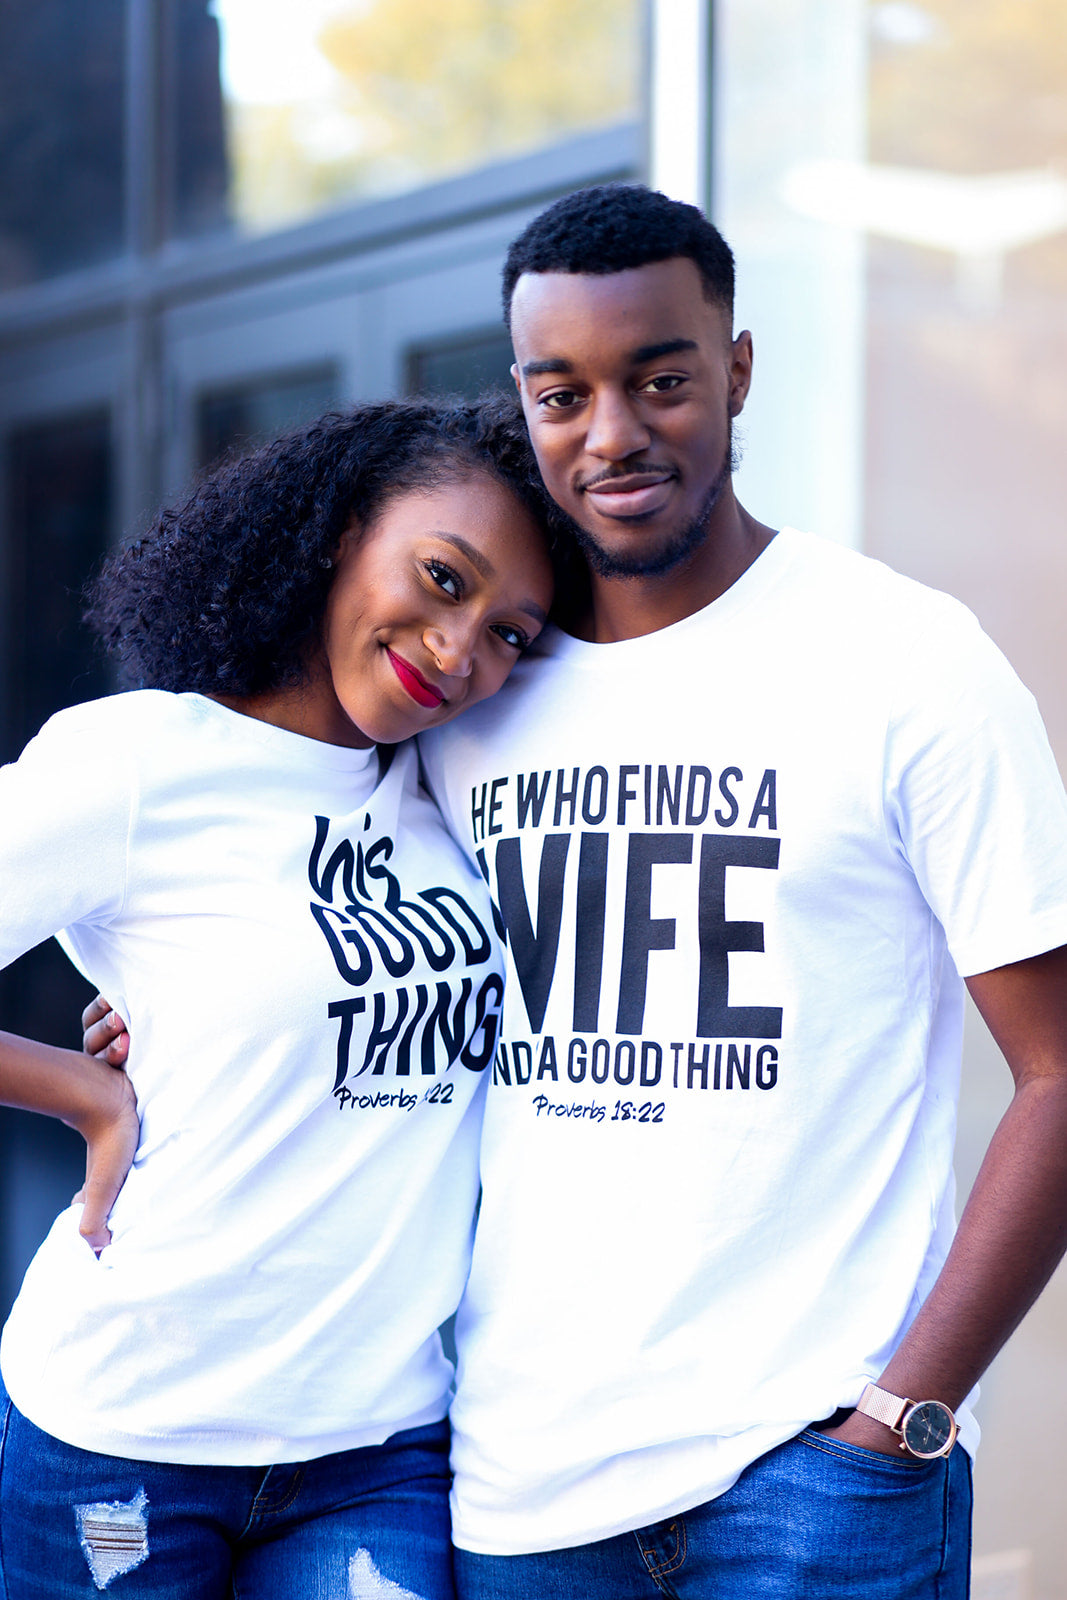 'He Who Finds a Wife' Tee